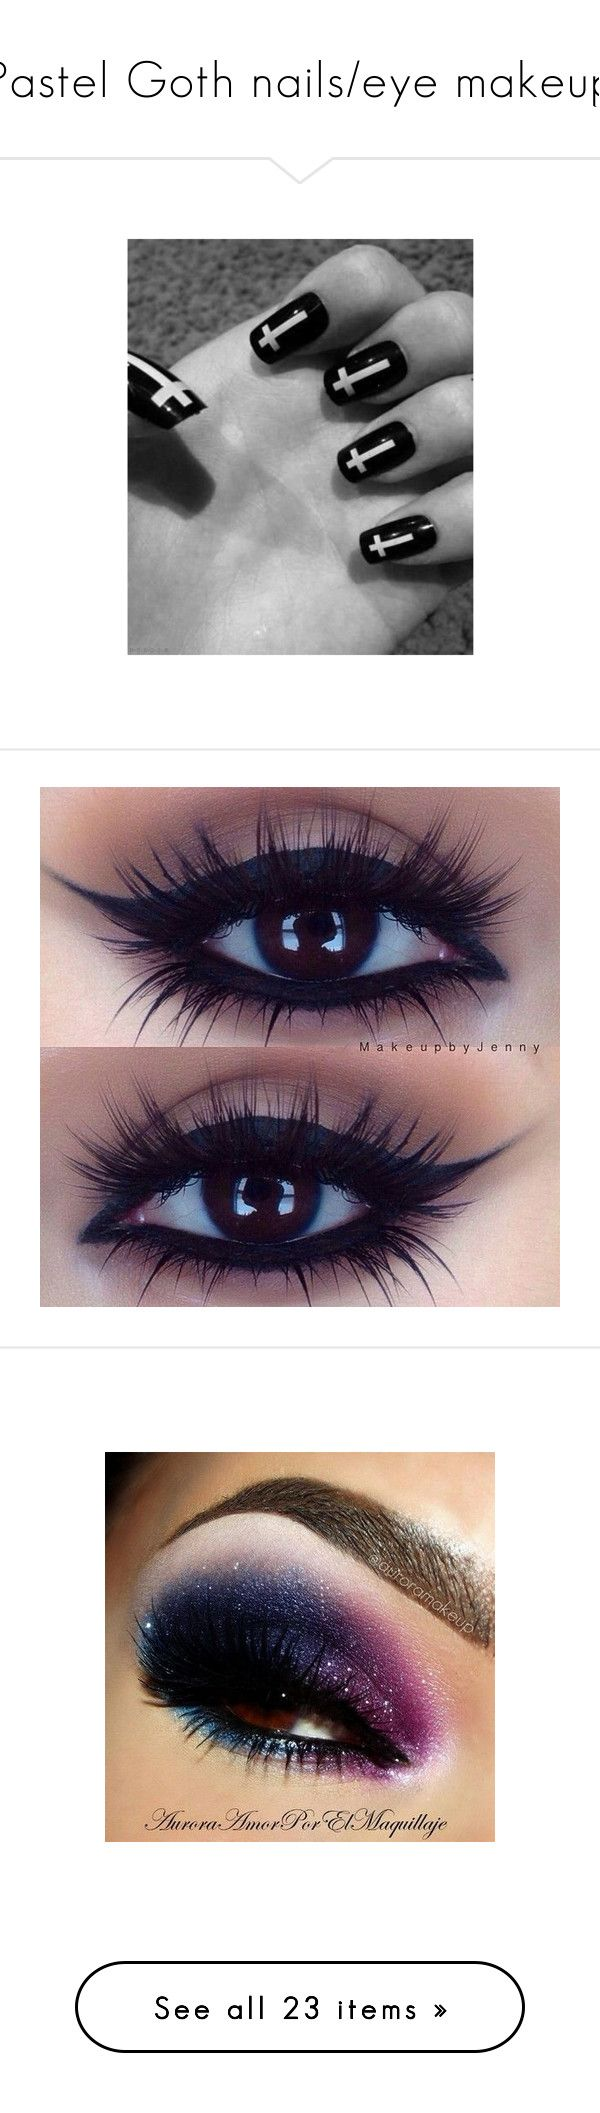 """""""Pastel Goth nails/eye makeup"""" by dark-doll-illusions ❤ liked on Polyvore featuring beauty products, makeup, eye makeup, eyes, beauty, maquiagem, fillers, gloss makeup, glossy eye makeup and nail care"""